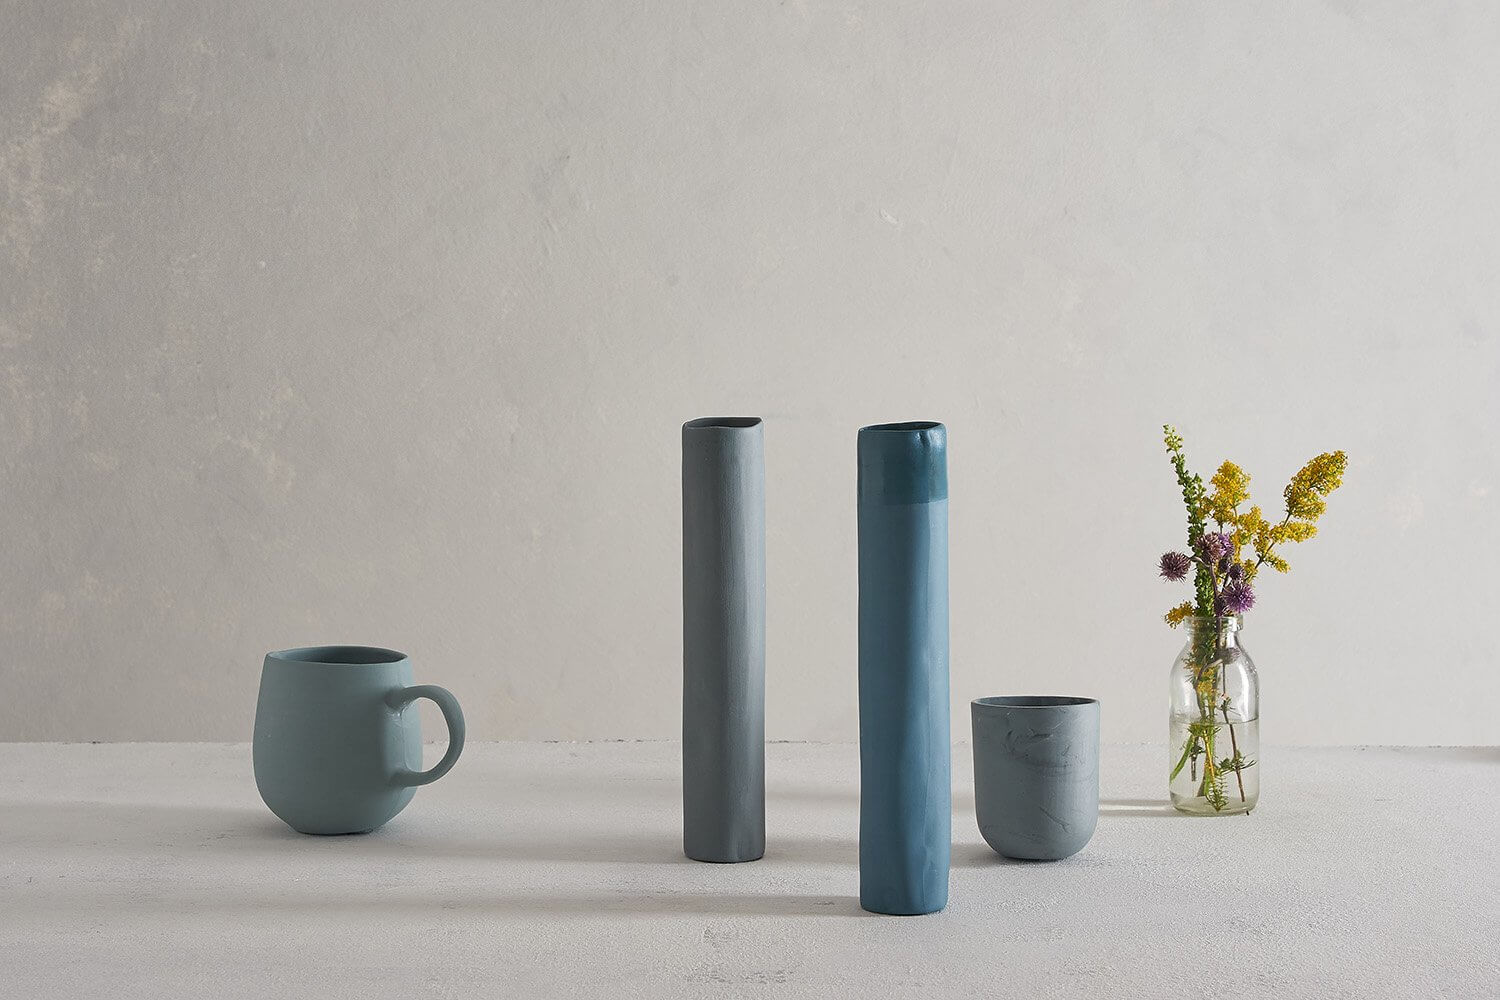 A still life art photograph with handmade ceramic vases cups and mugs by Febbie Day Ceramics